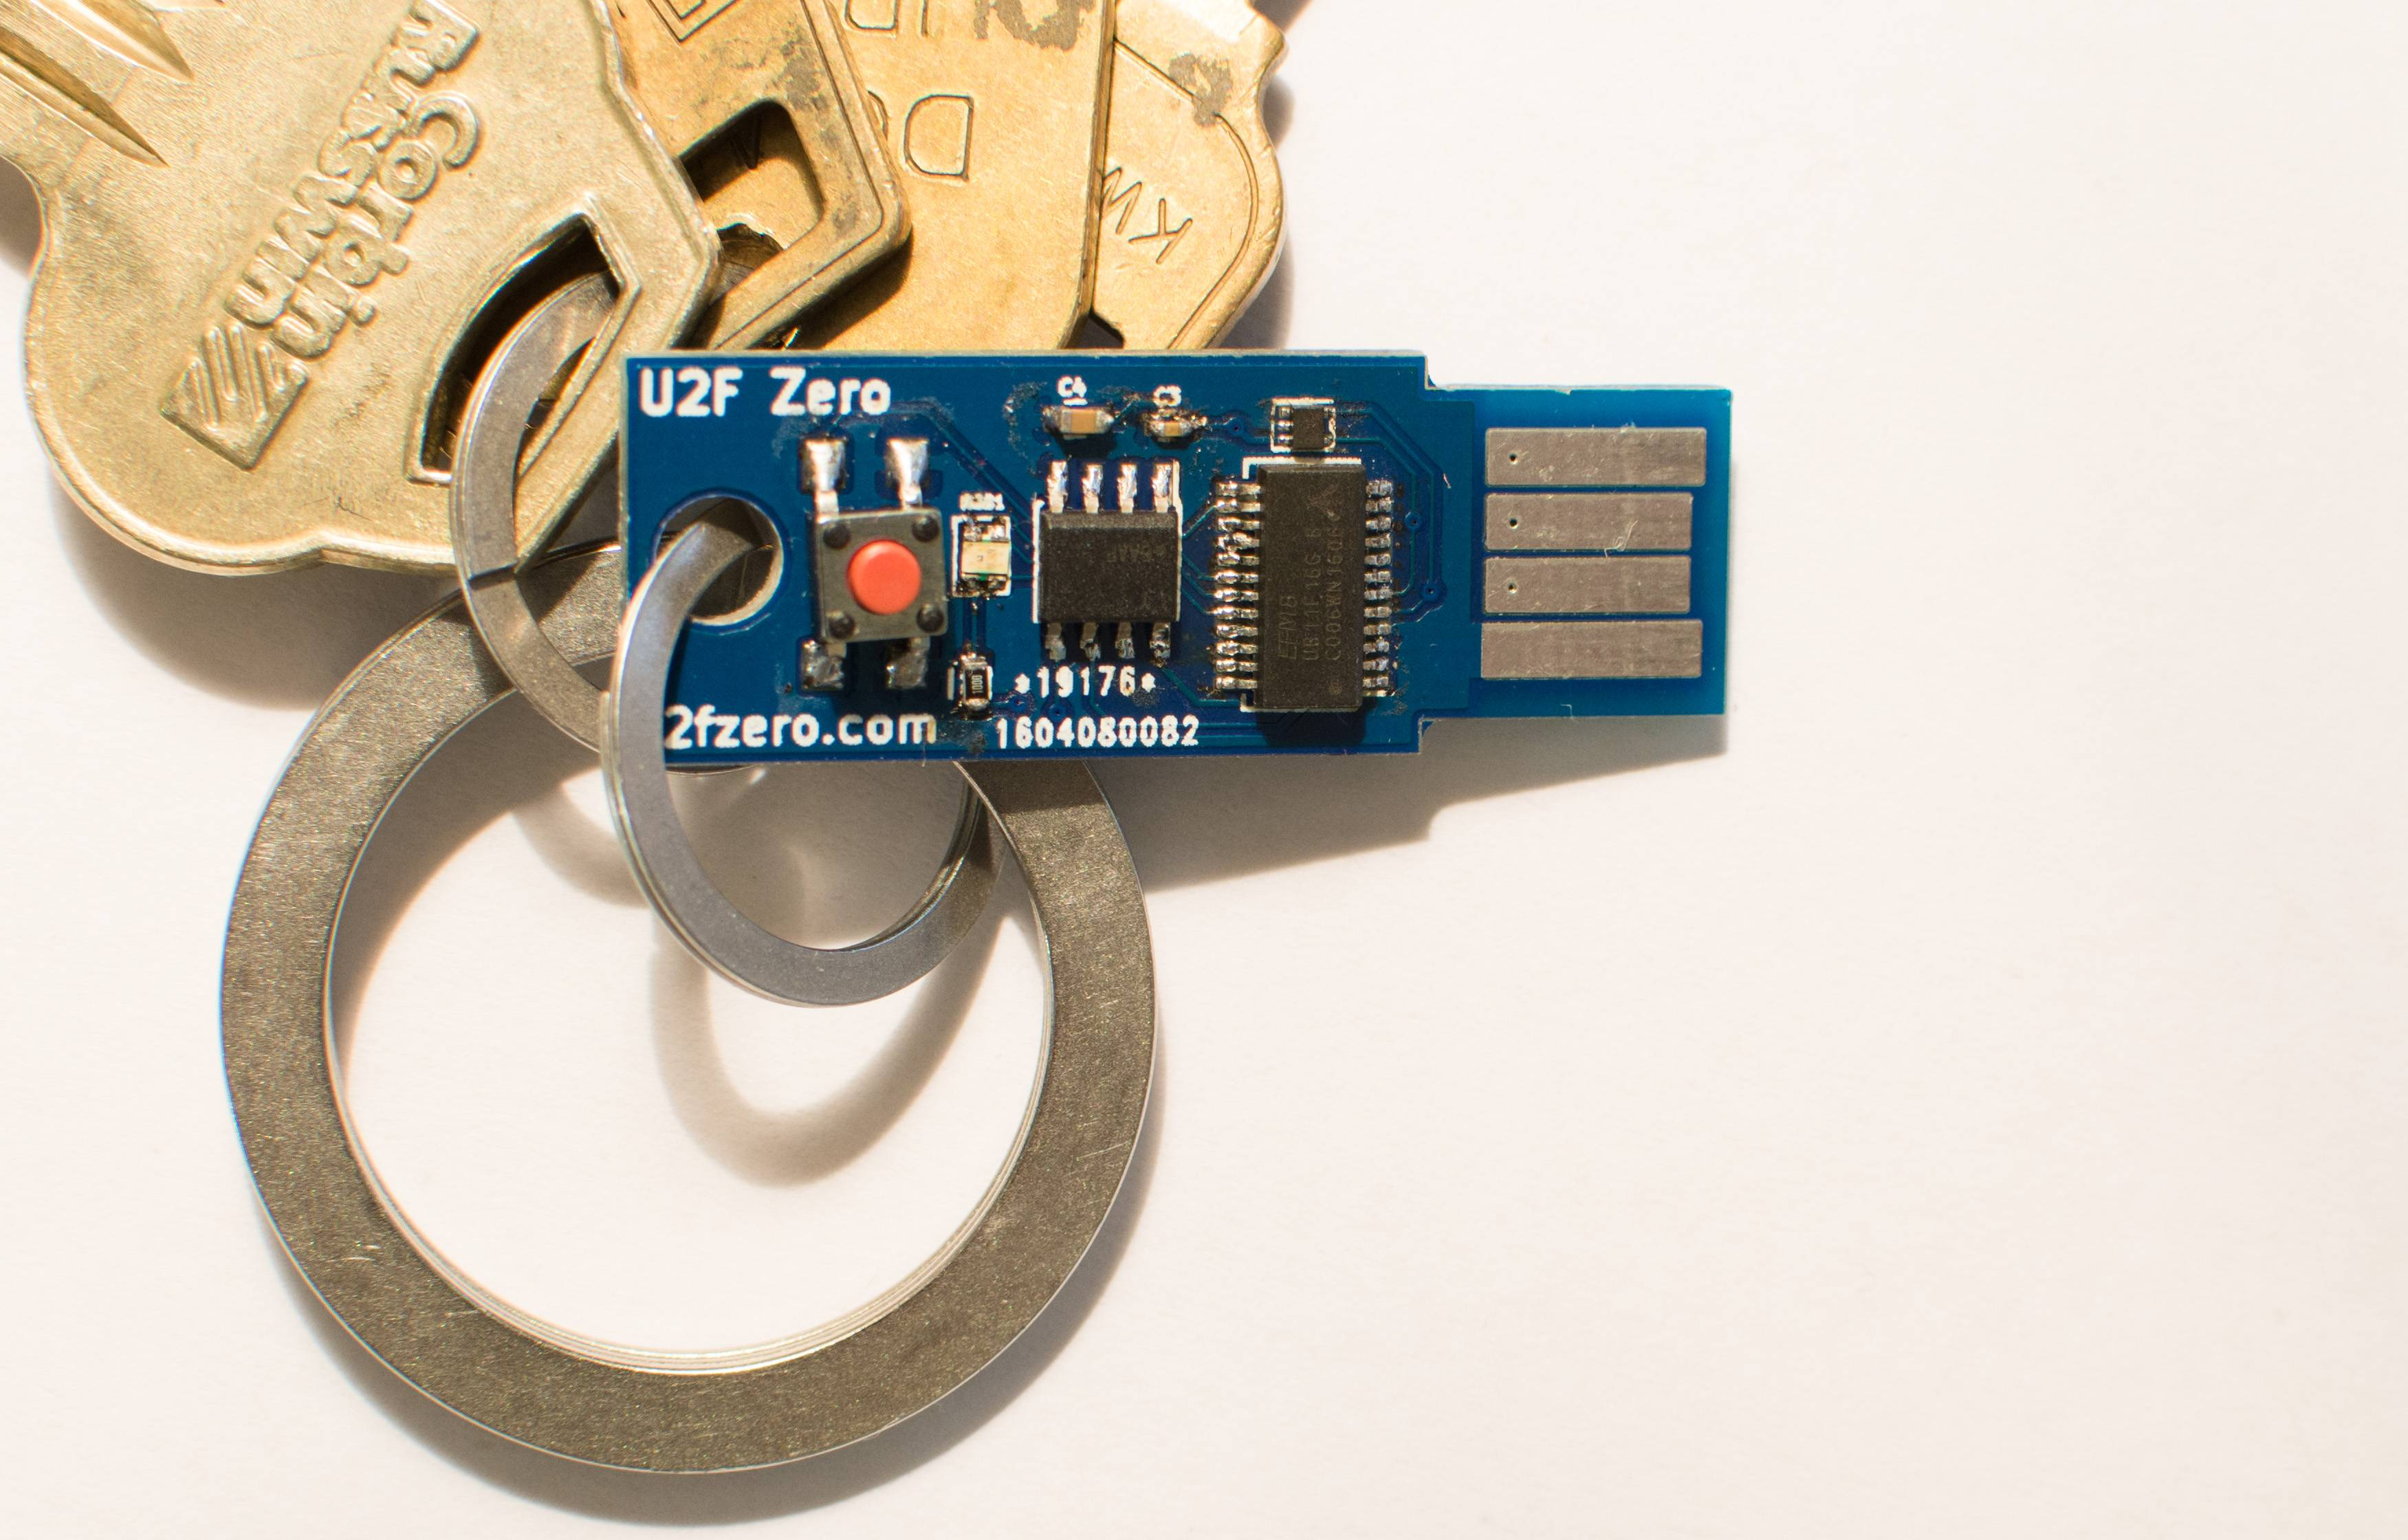 Github Conorpp U2f Zero Usb Token Optimized For Physical How To Build Electronic Security Door Key You